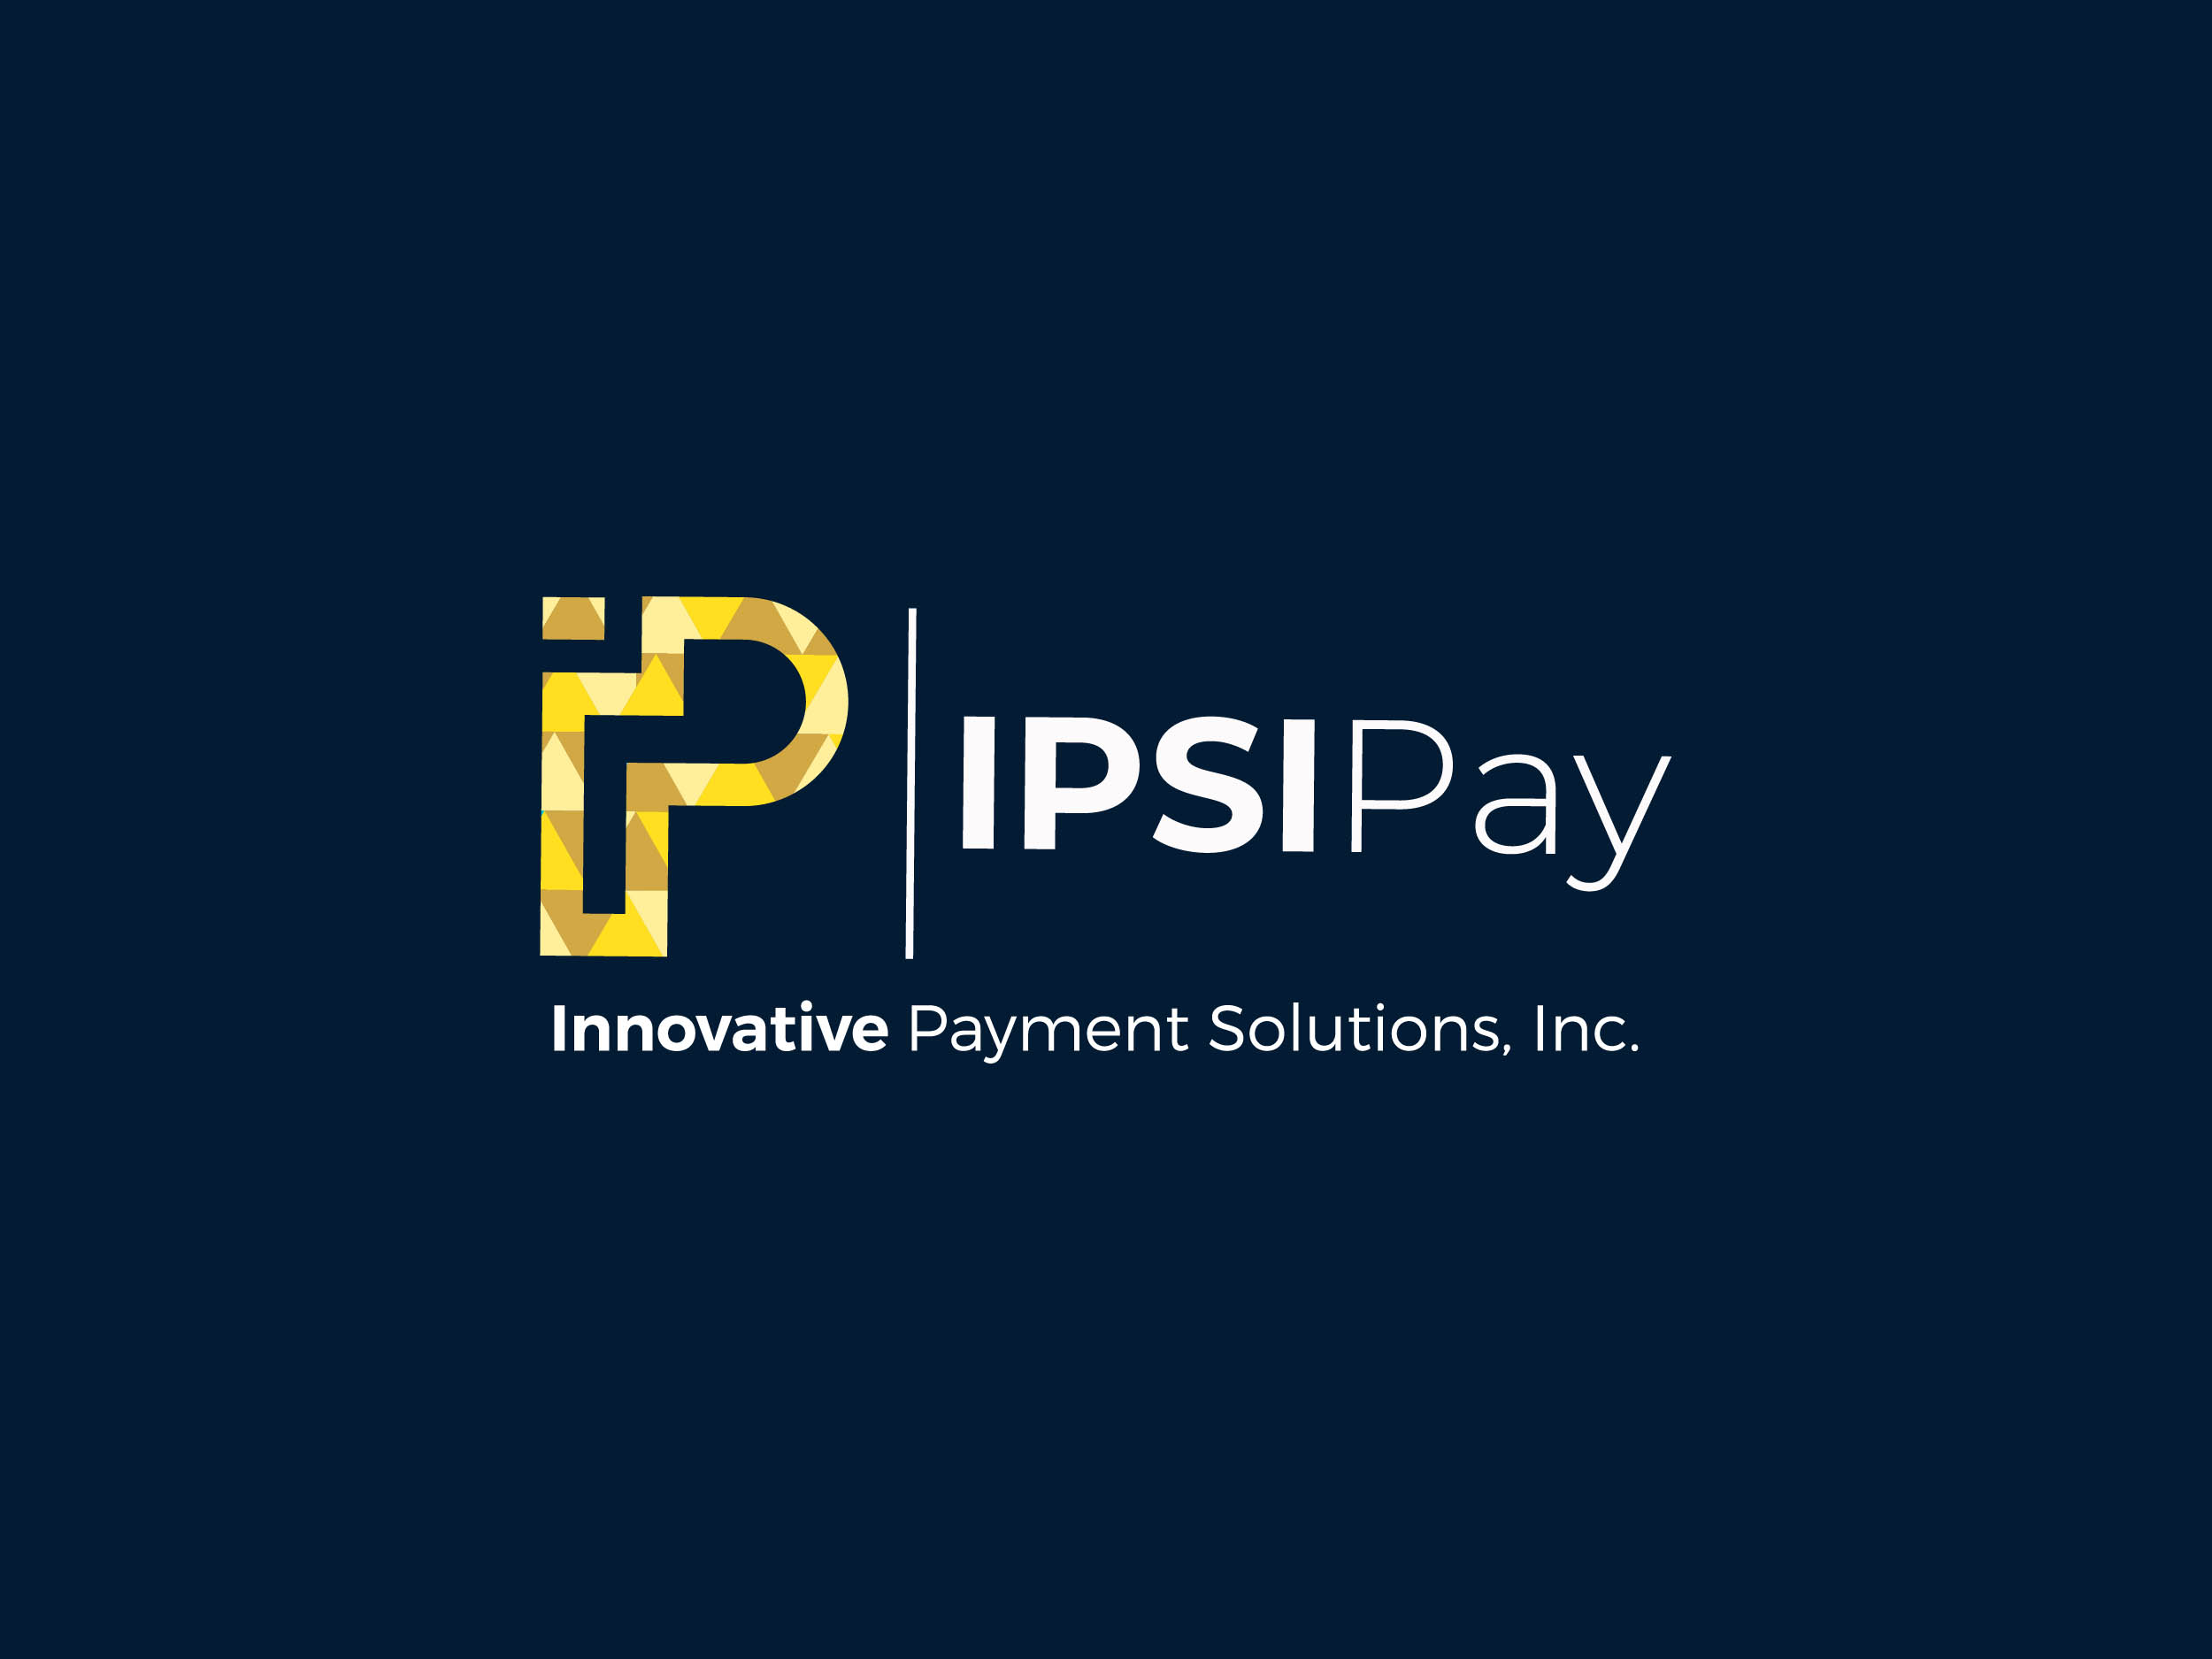 Innovative Payment Solutions, Inc